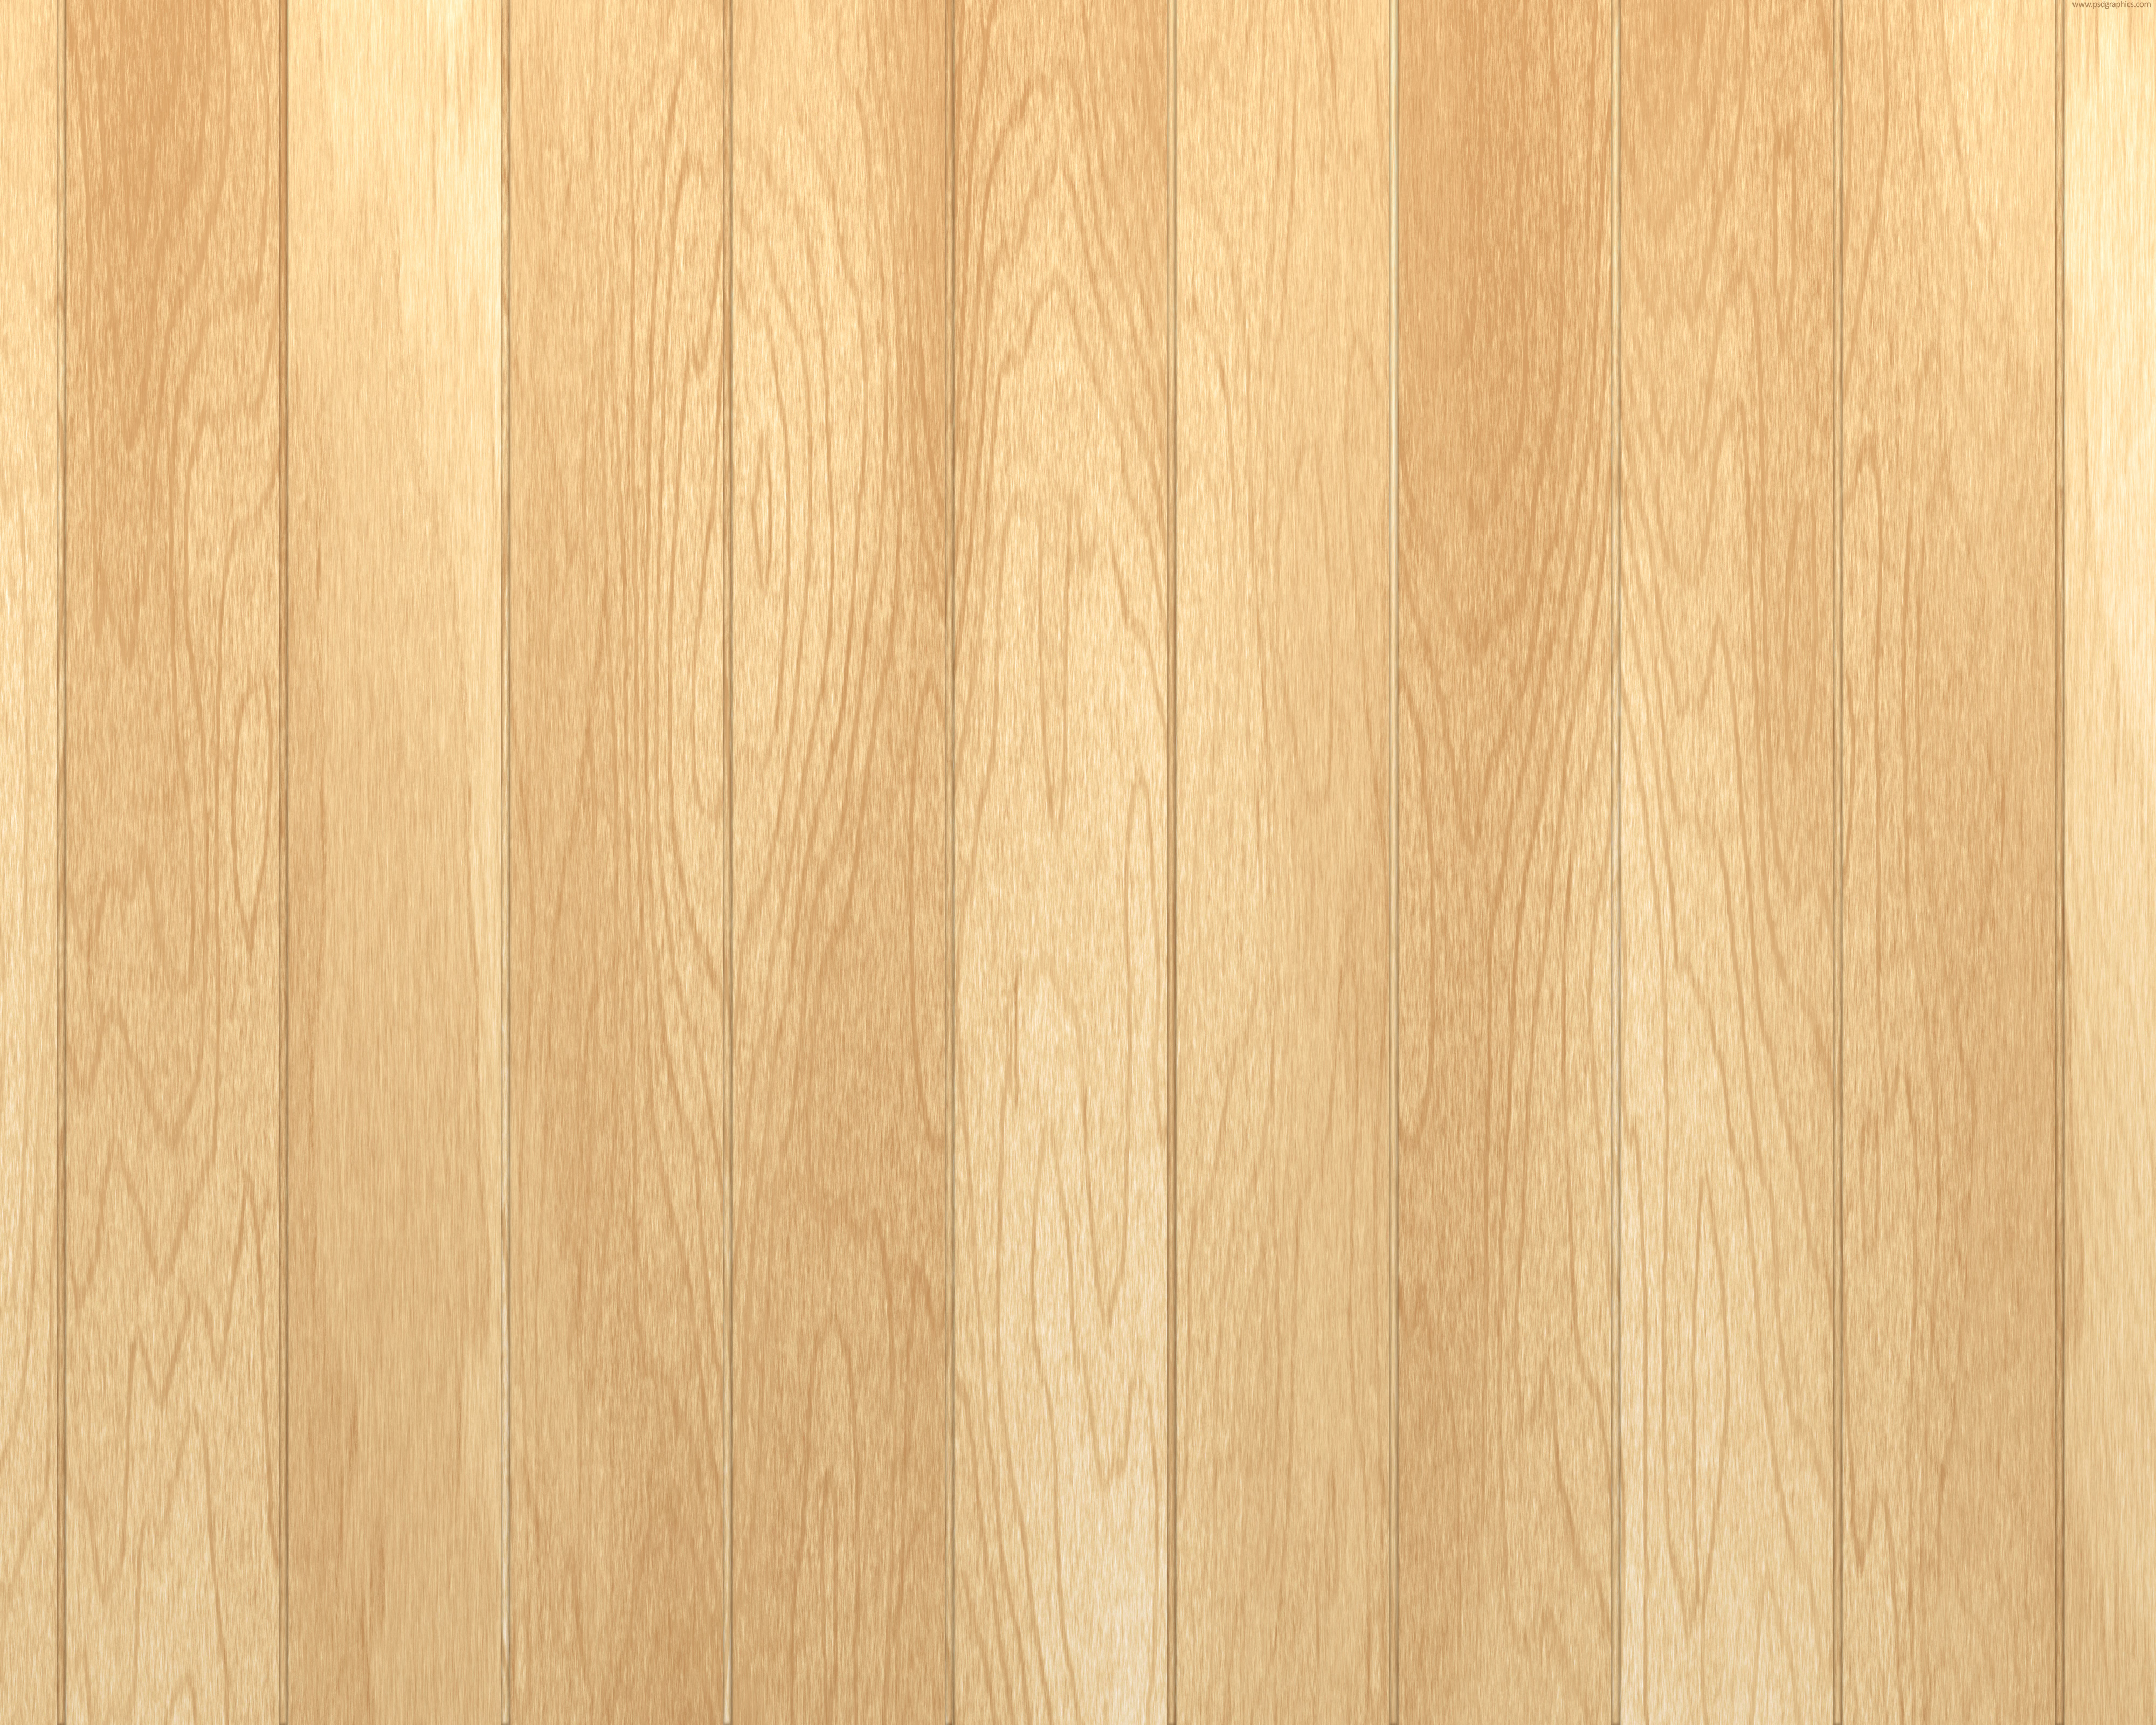 Wooden Floor clipart light wood Wood wood Pinterest light 2